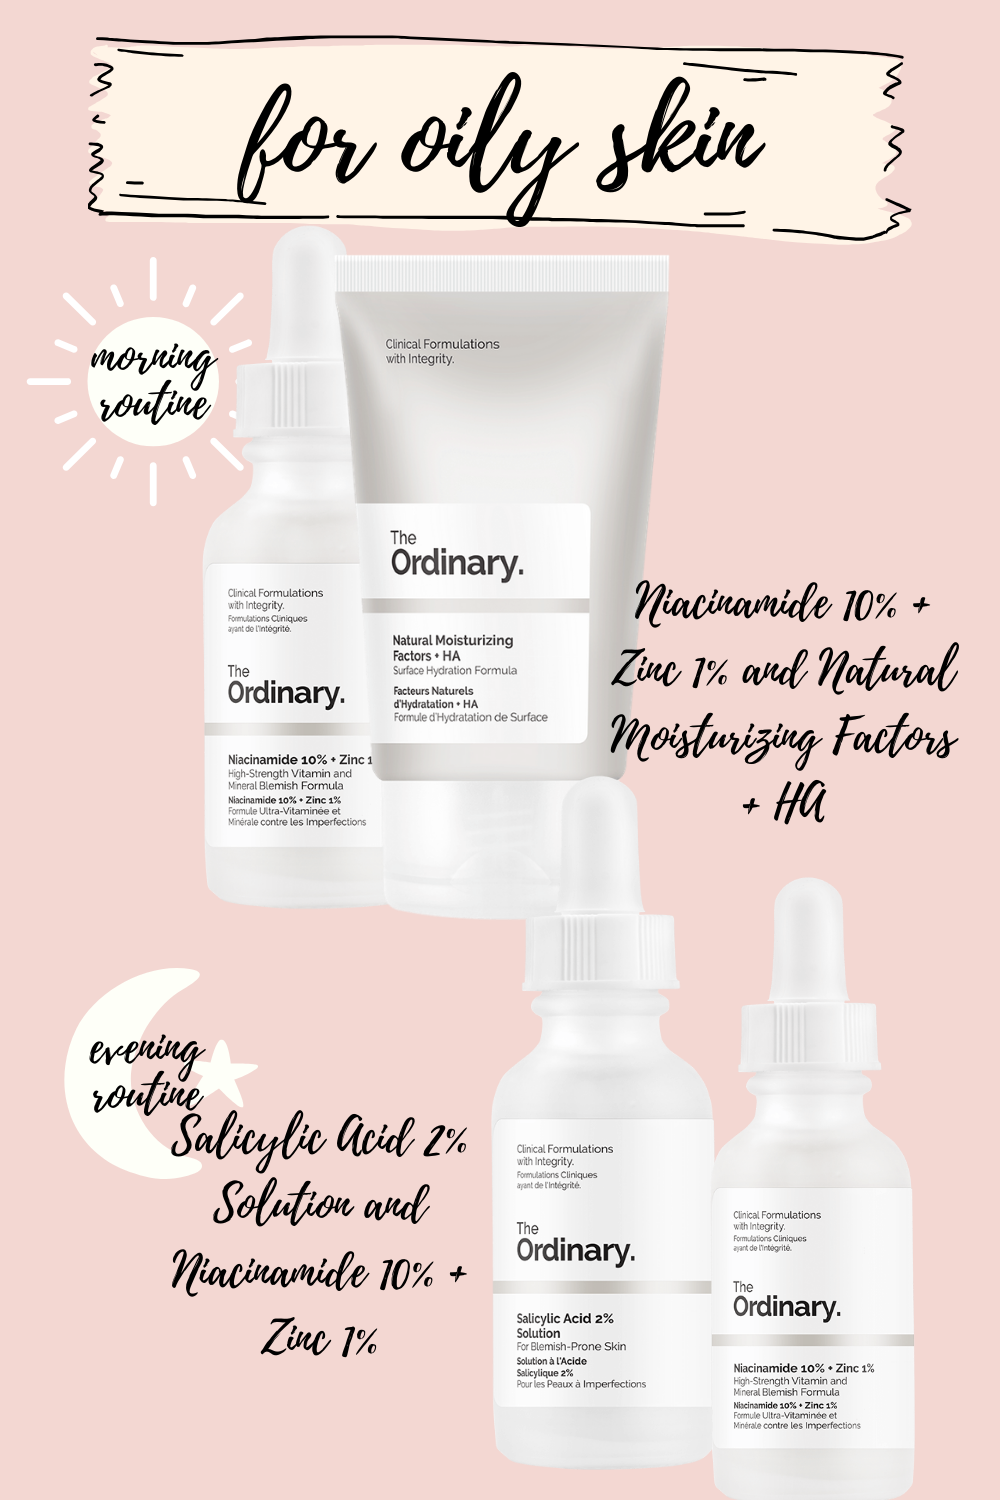 Acneskincareproduct In 2020 Oily Skin Routine Oily Skin Care The Ordinary Skincare Routine